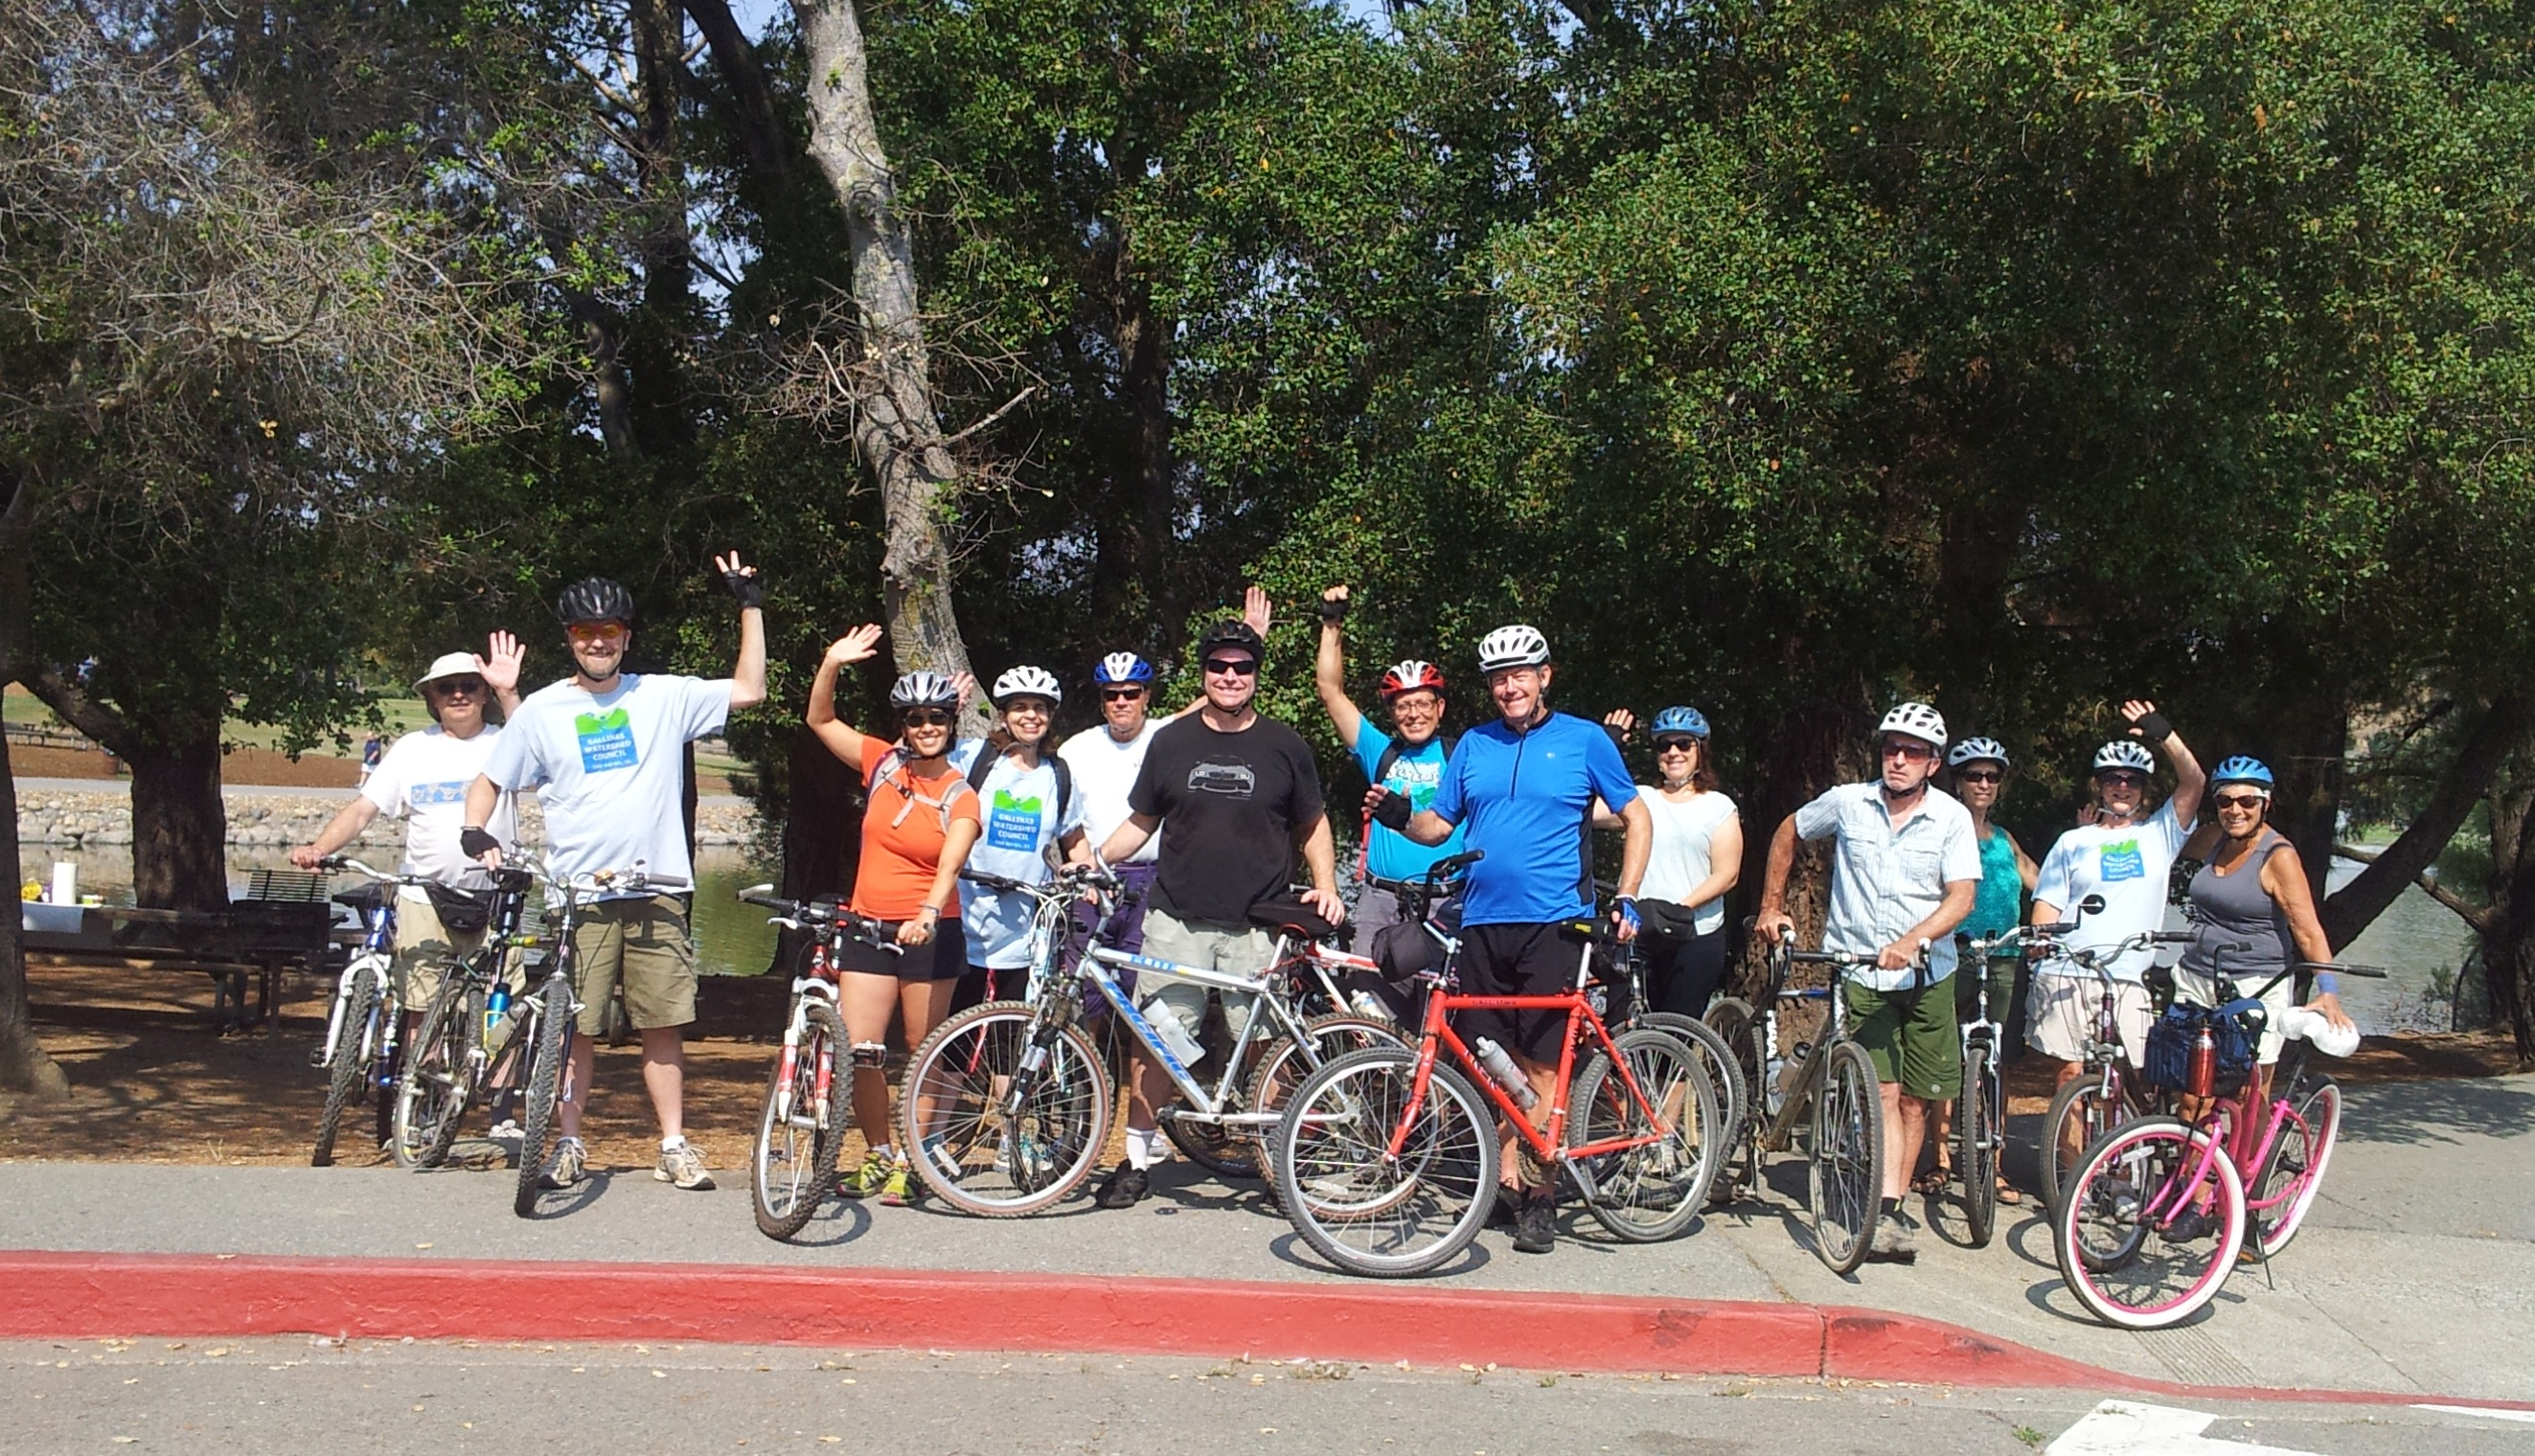 Bike the Watershed 5: 5th Annual GWC Bicycle Tour